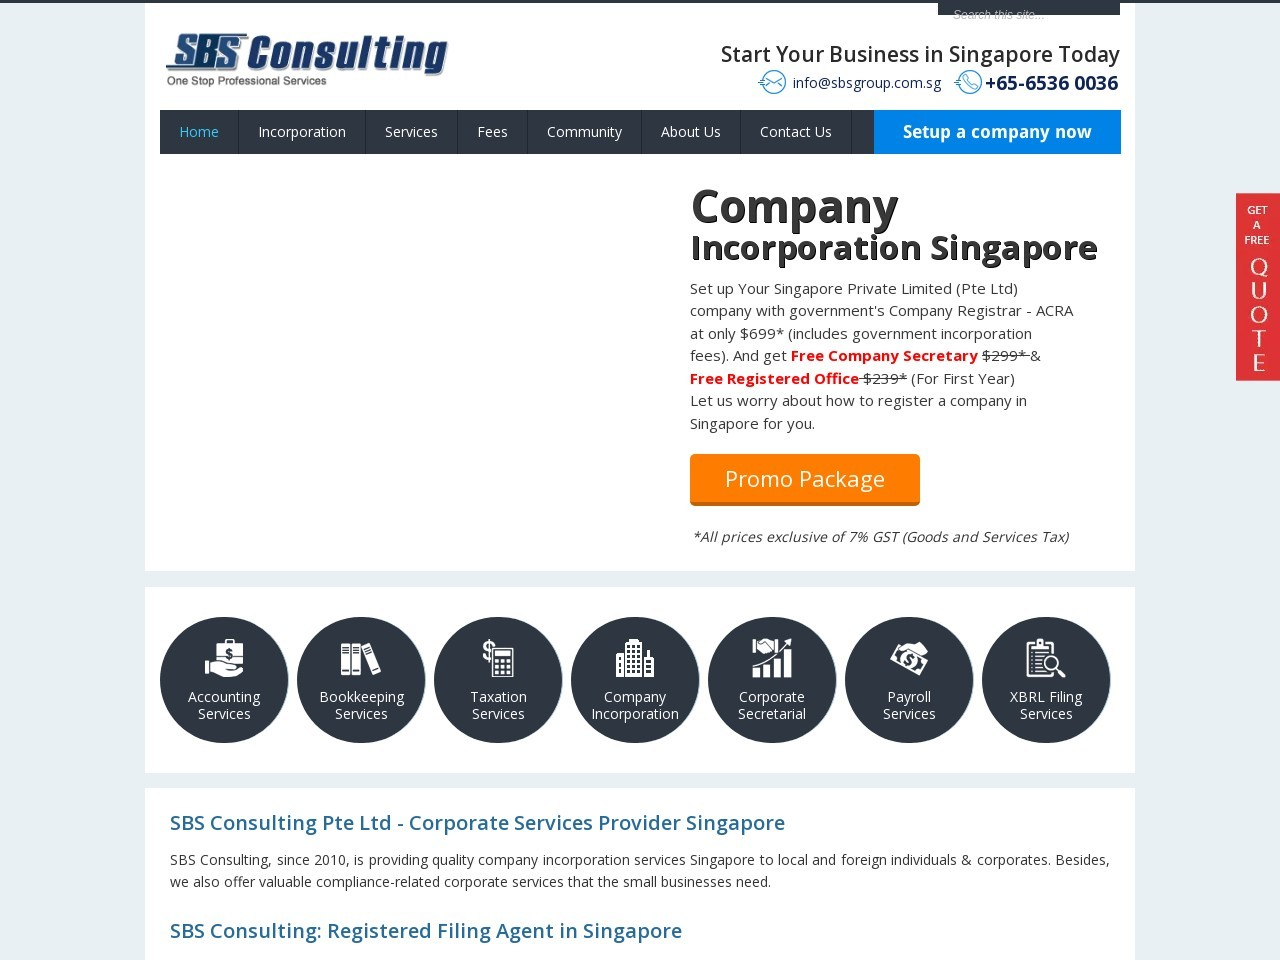 To Form A Private Limited Company In Singapore With The Help Of SBS Consulting